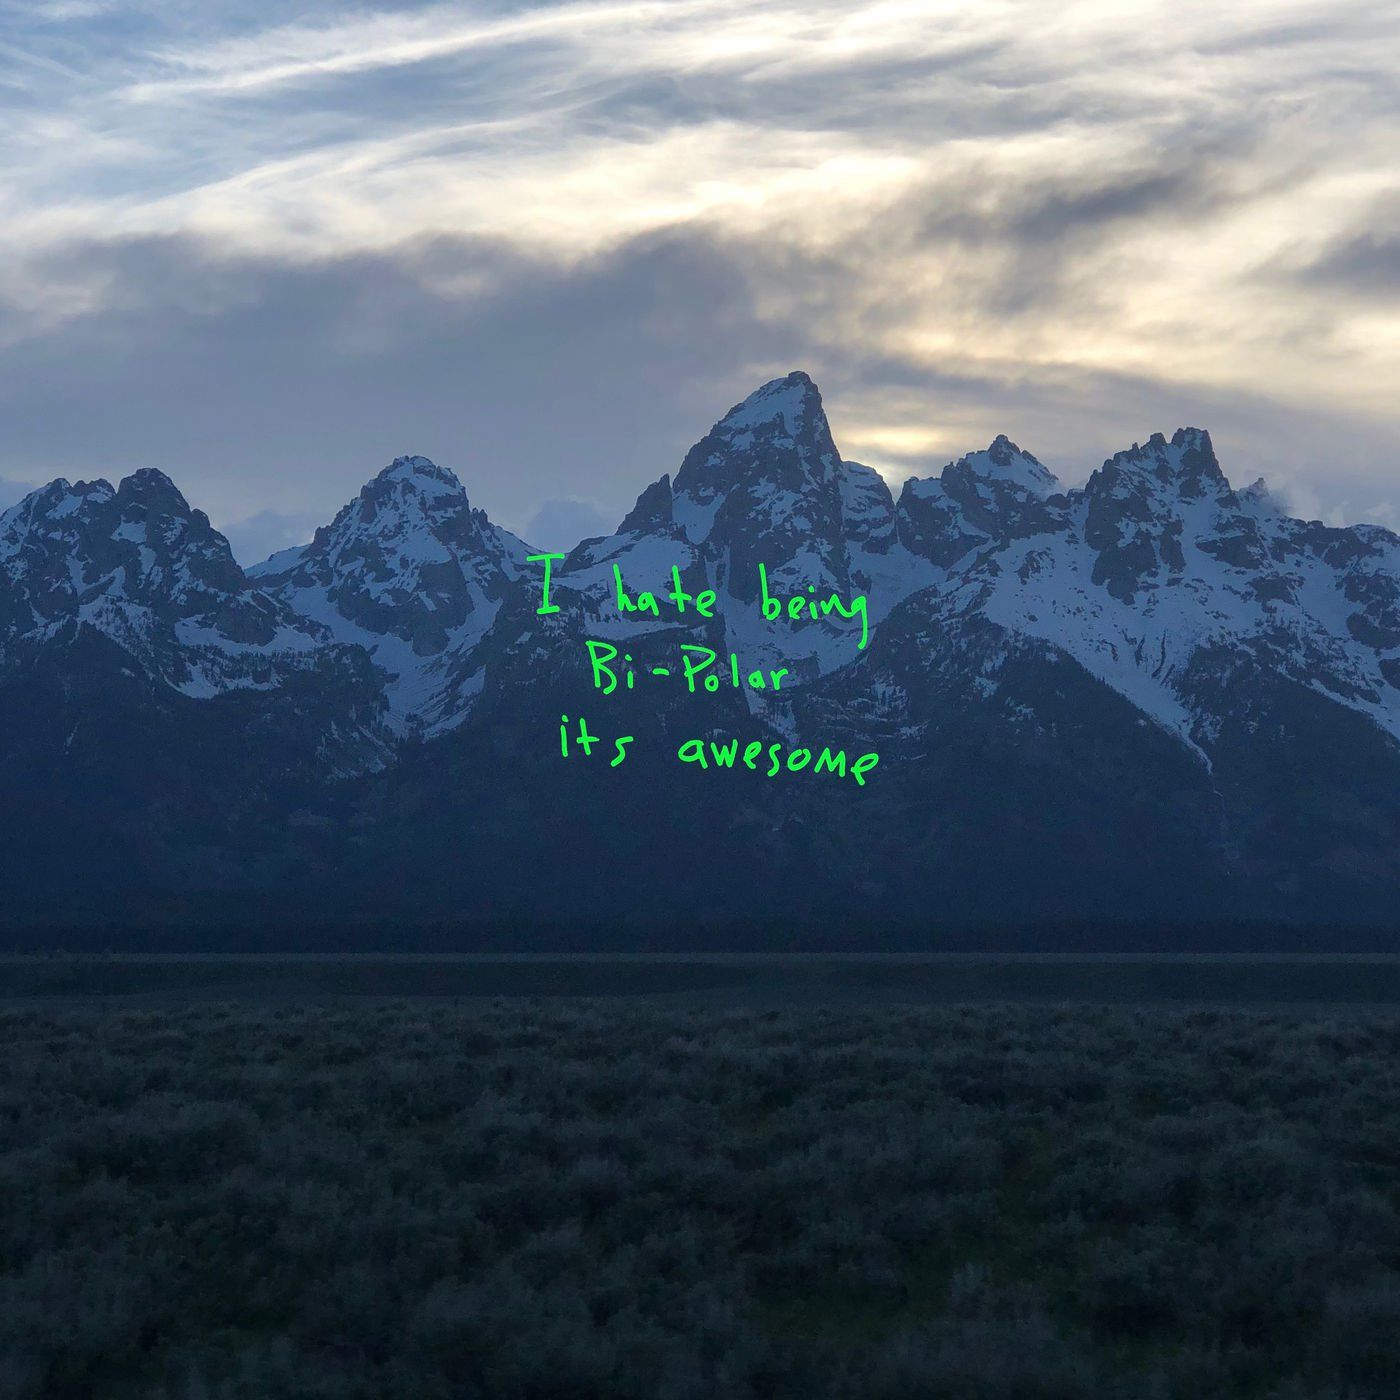 Kanye Shot His Own Album Cover Pic With His Iphone At The Last Minute Kanye West New Album Kanye West Album Cover Kanye West Albums